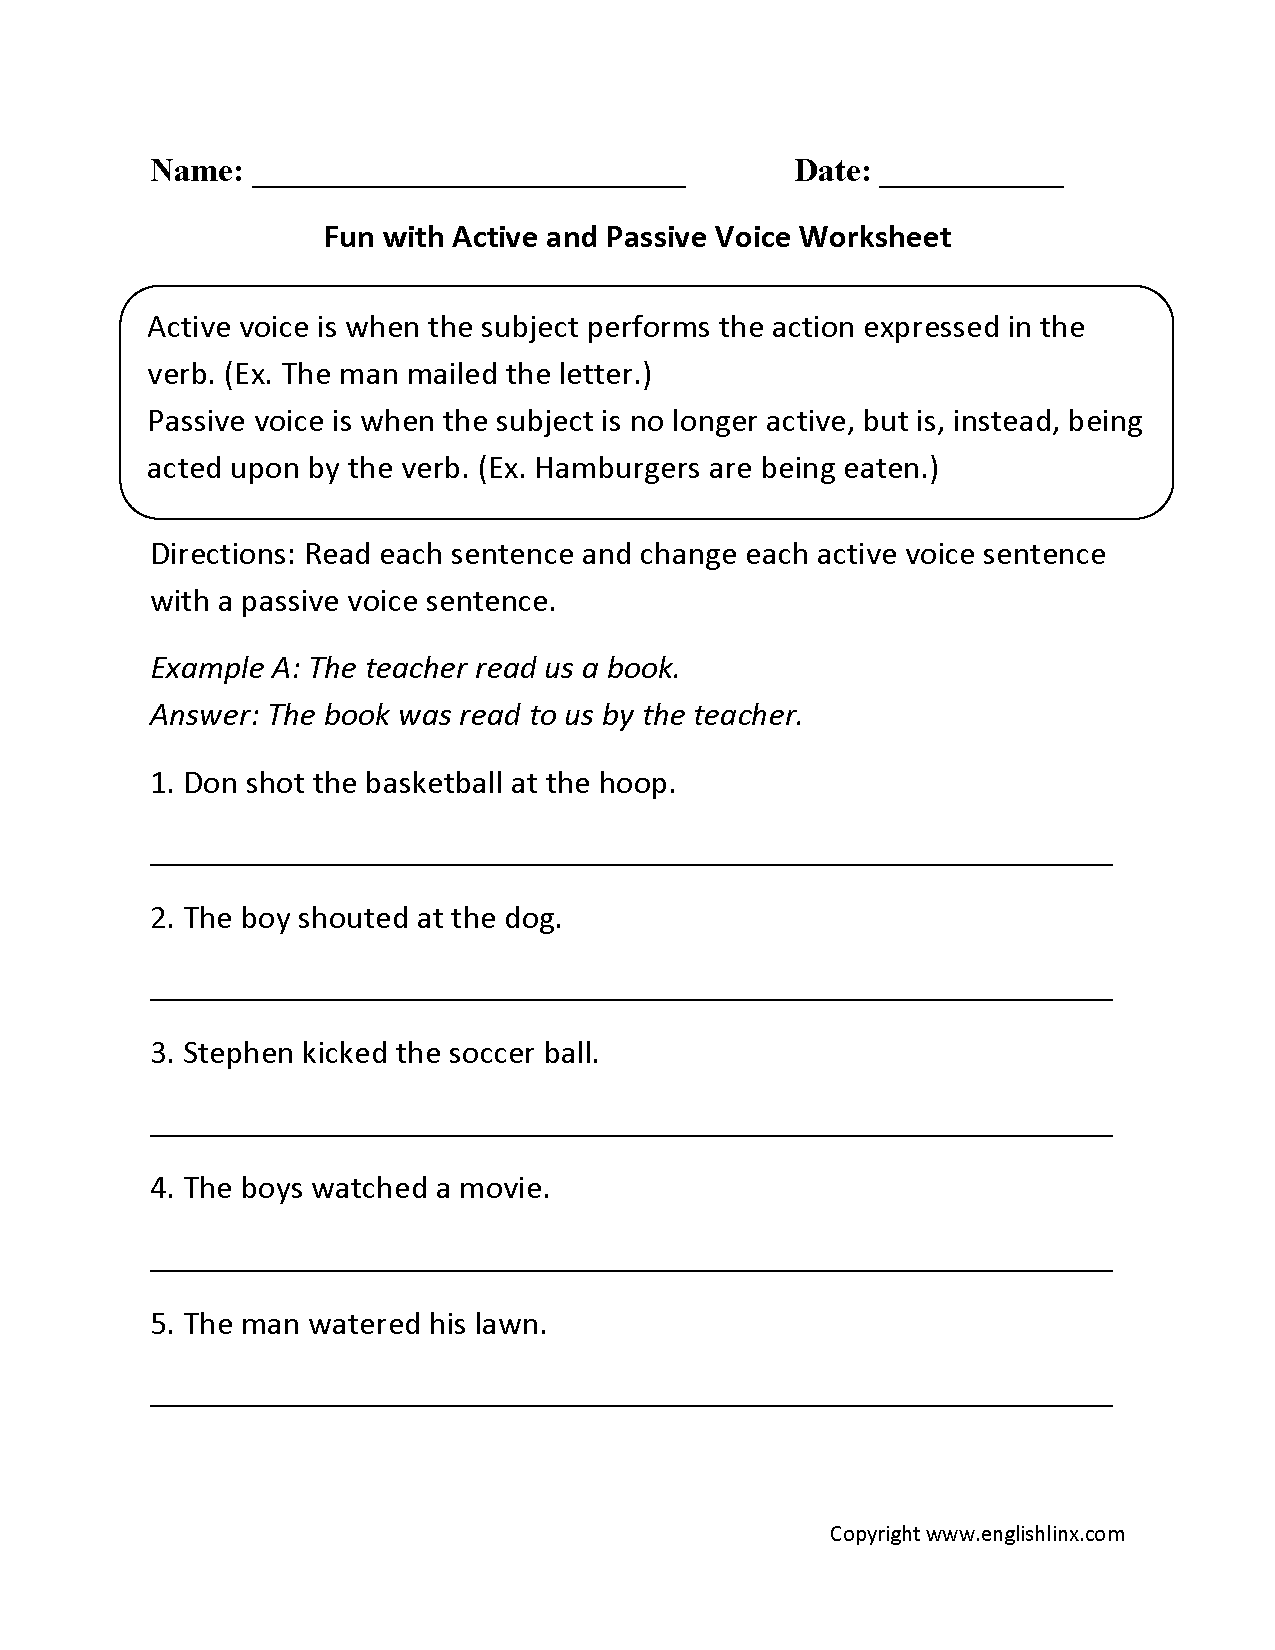 Worksheet. Third Grade Verb Worksheets. Noconformity Free Worksheet